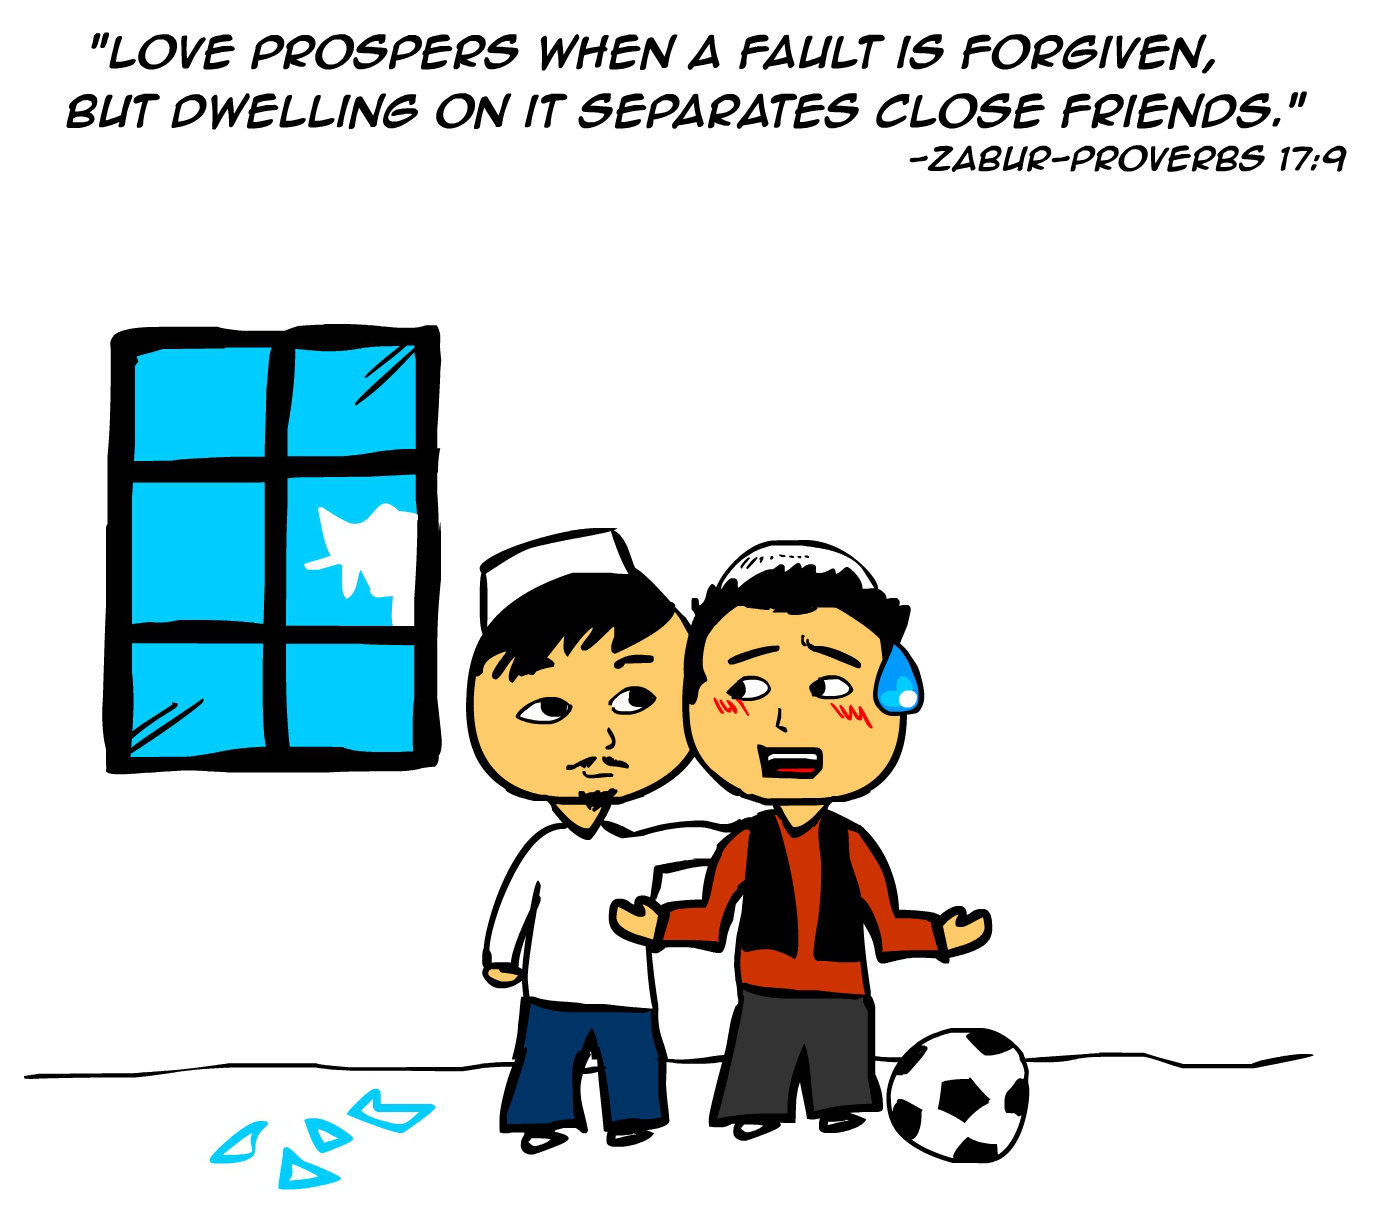 """Love prospers when a fault is forgiven, but dwelling on it separates close friends."" -Zabur Proverbs 17:9"